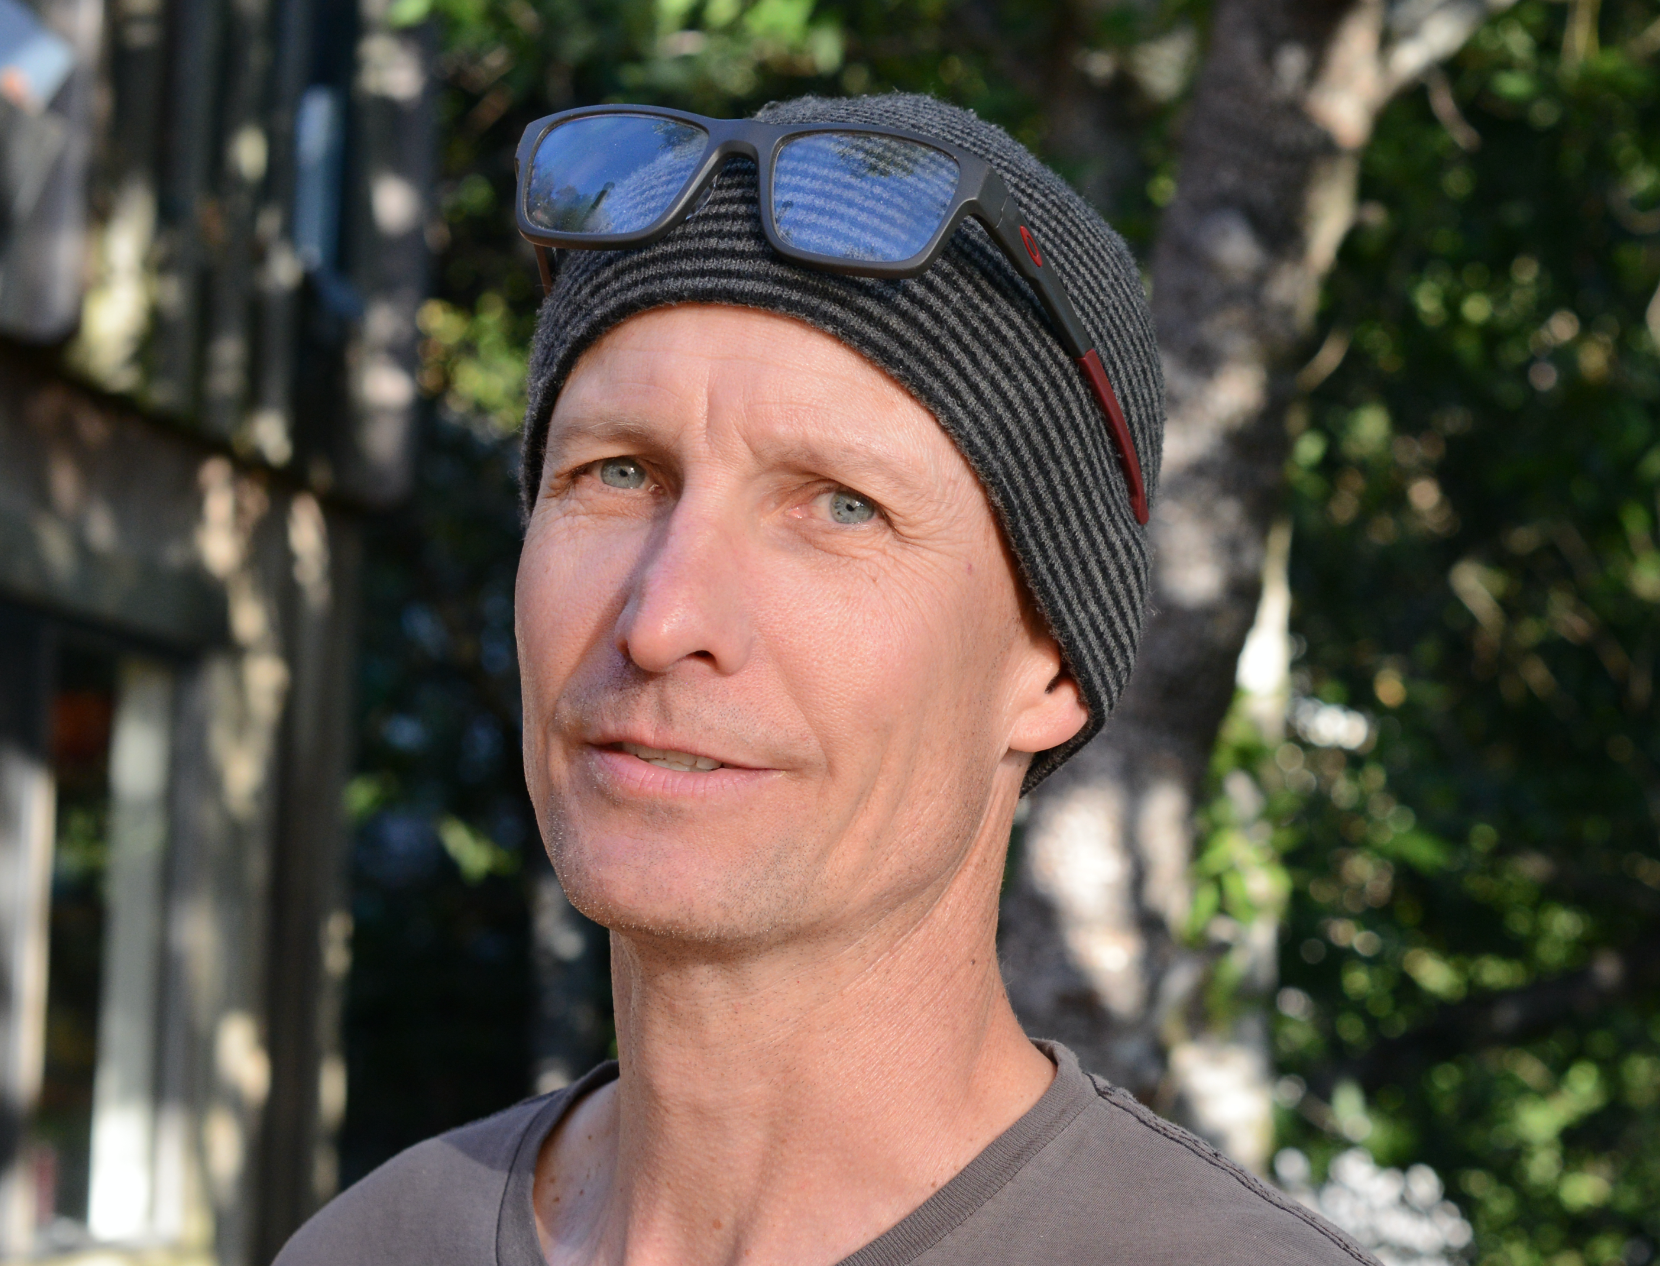 Steve Montgomery - A passionate outdoor enthusiast with years of hiking, biking, climbing and river running. After many years in the medical world, Steve has shifted his focus to pursue his passion of furniture design and craftsmanship.